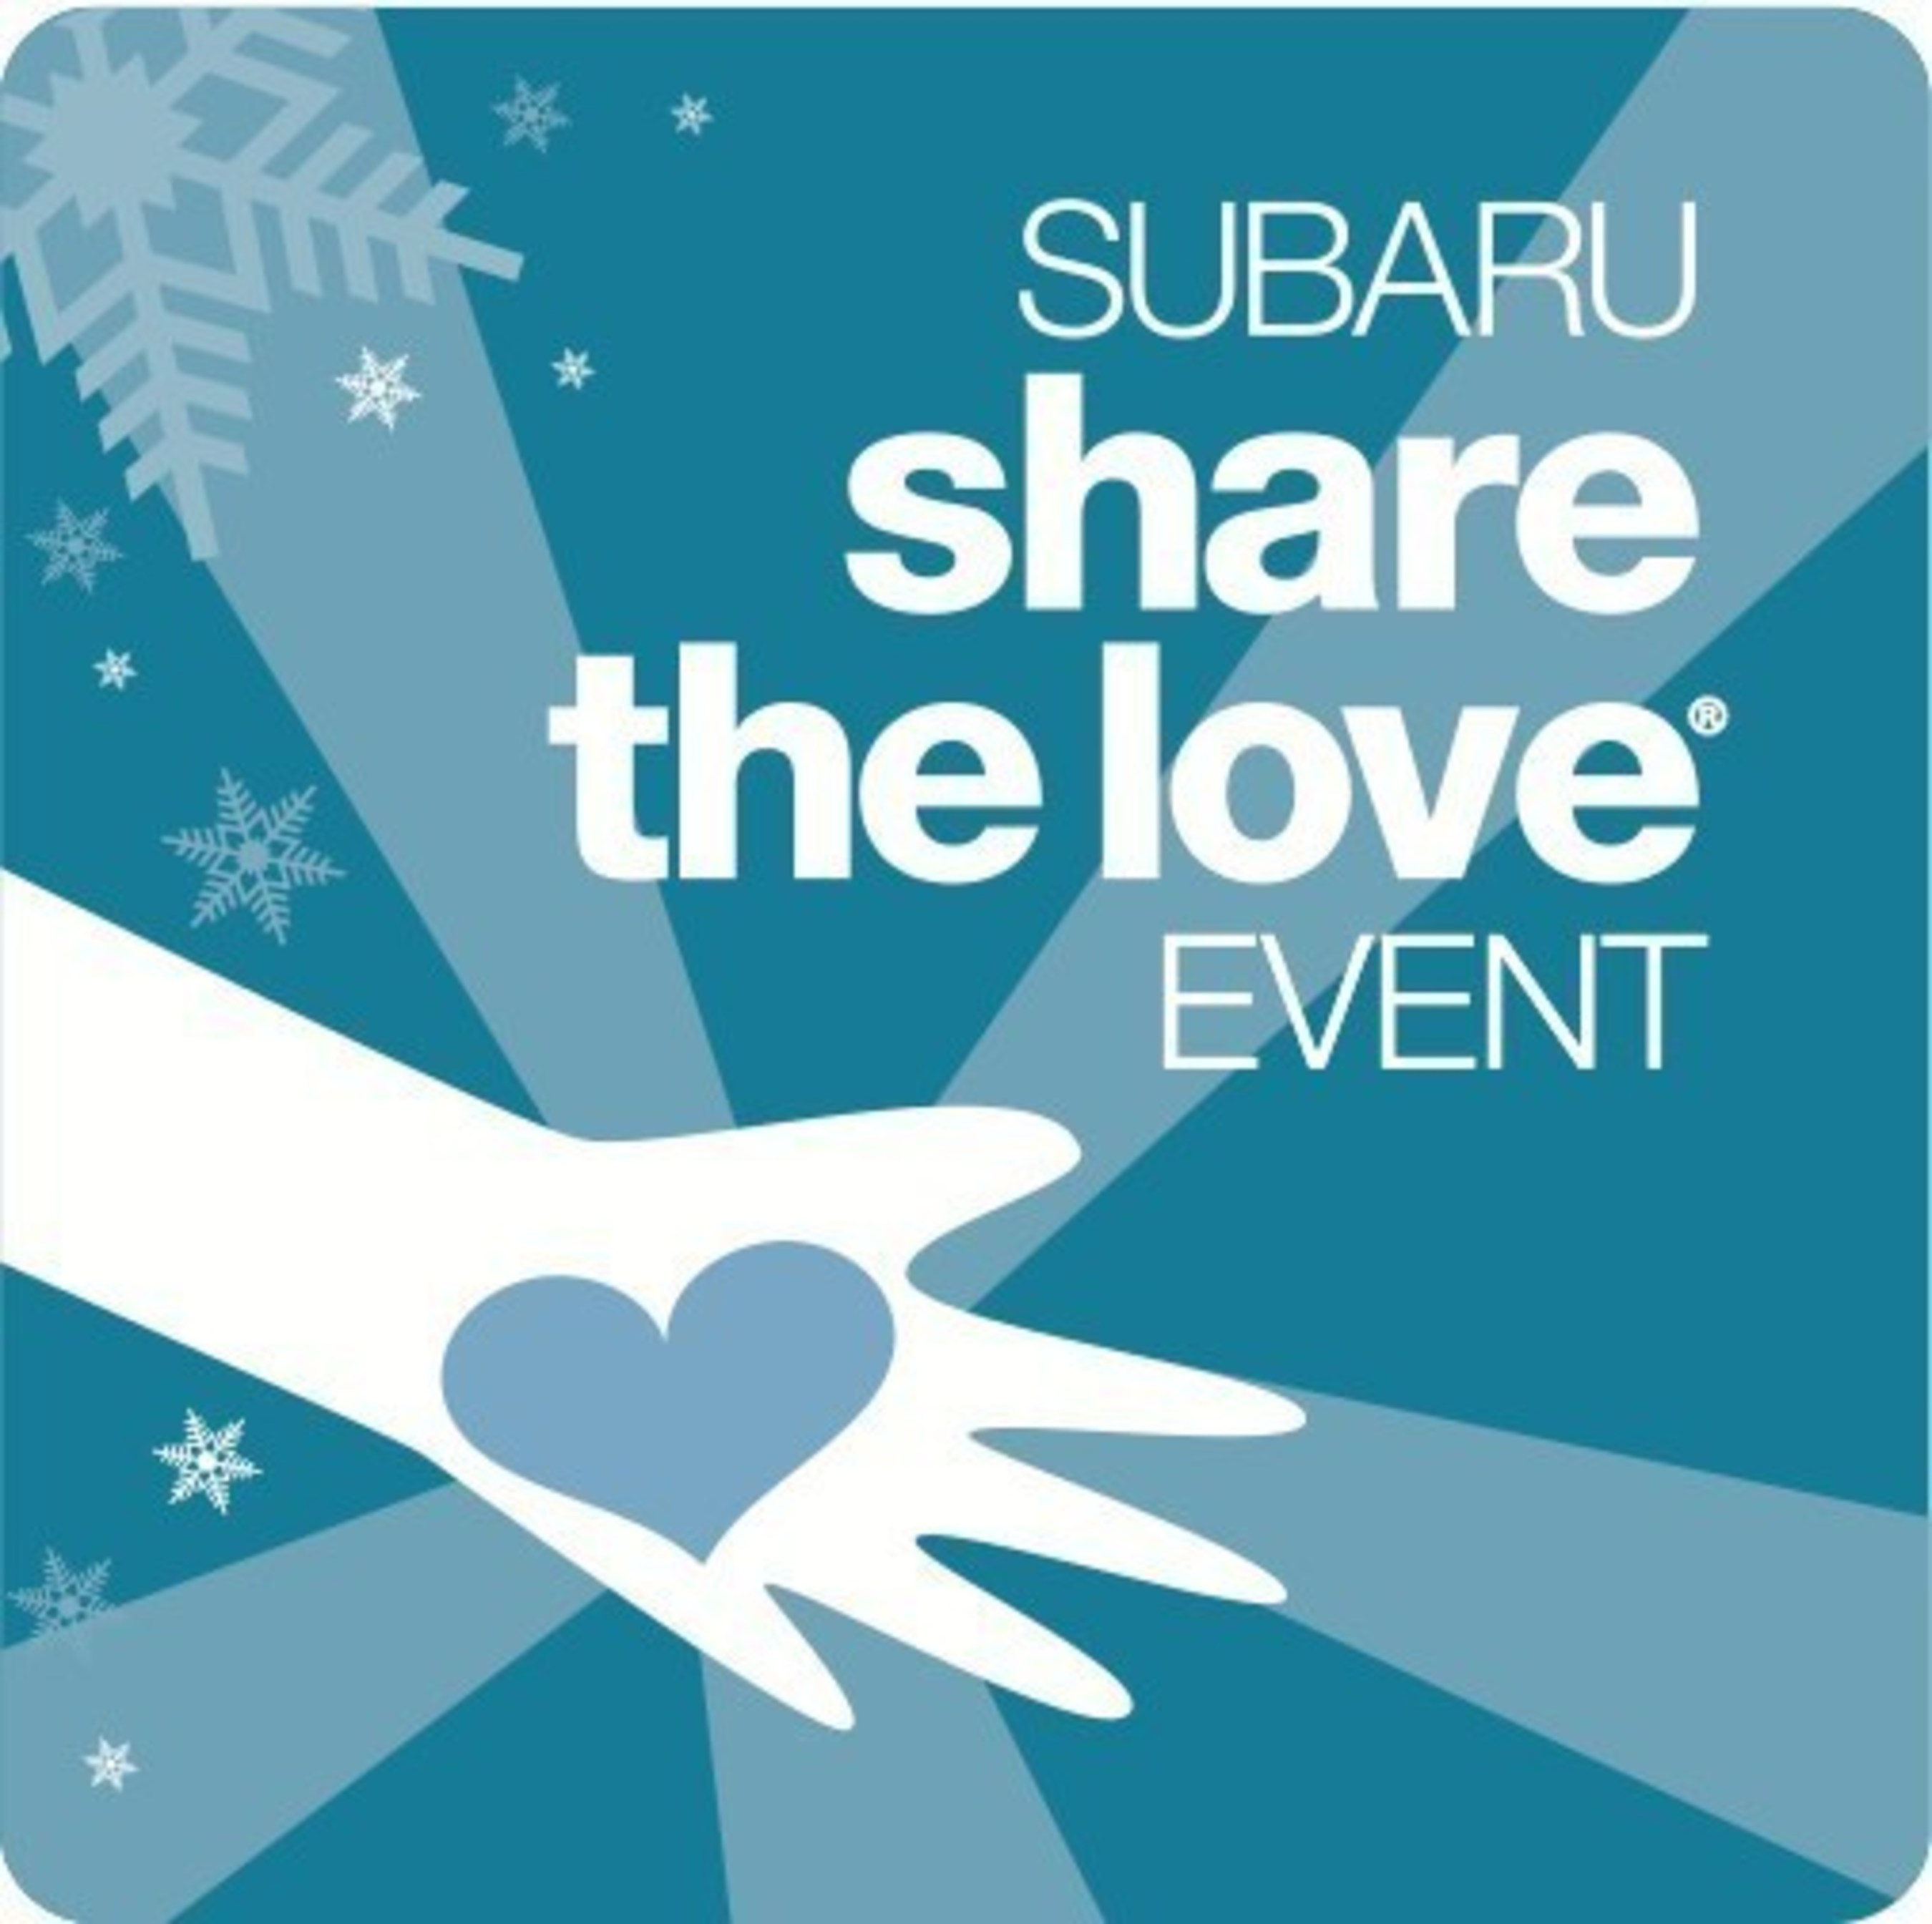 New Subaru Advertising Campaign Brings to Life the Impact of the Share the Love Event